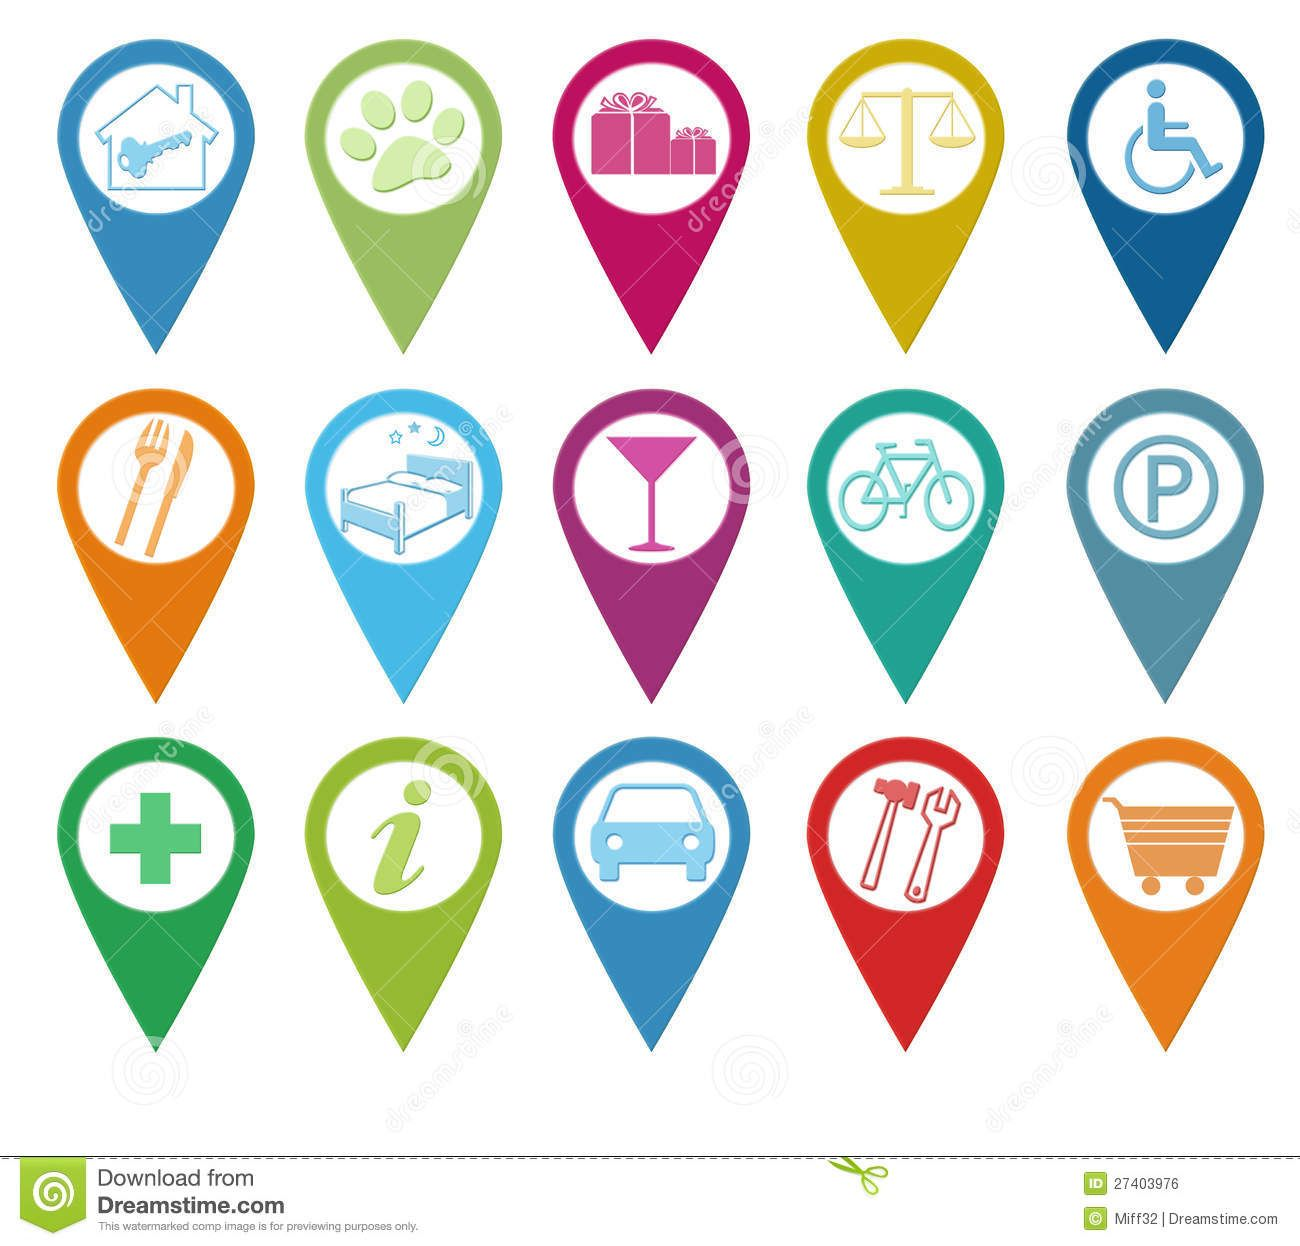 Pin by W4LLIS321 on map icons Map icons, Map, Games